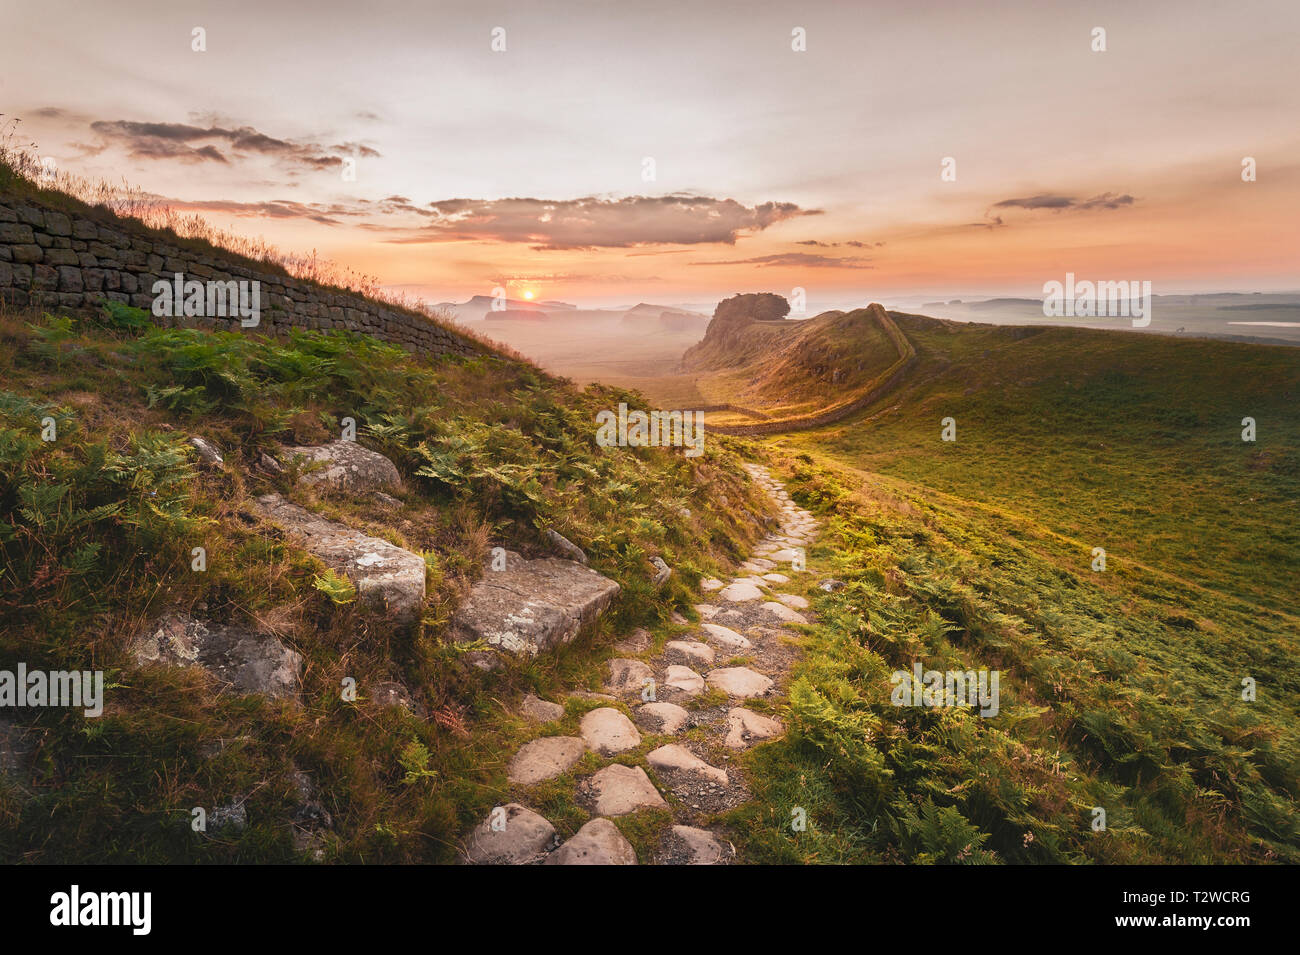 Dawn on path near Cuddy's Craig on Hadrian's Wall looking east towards Houseteads Craig and the rising sun. - Stock Image